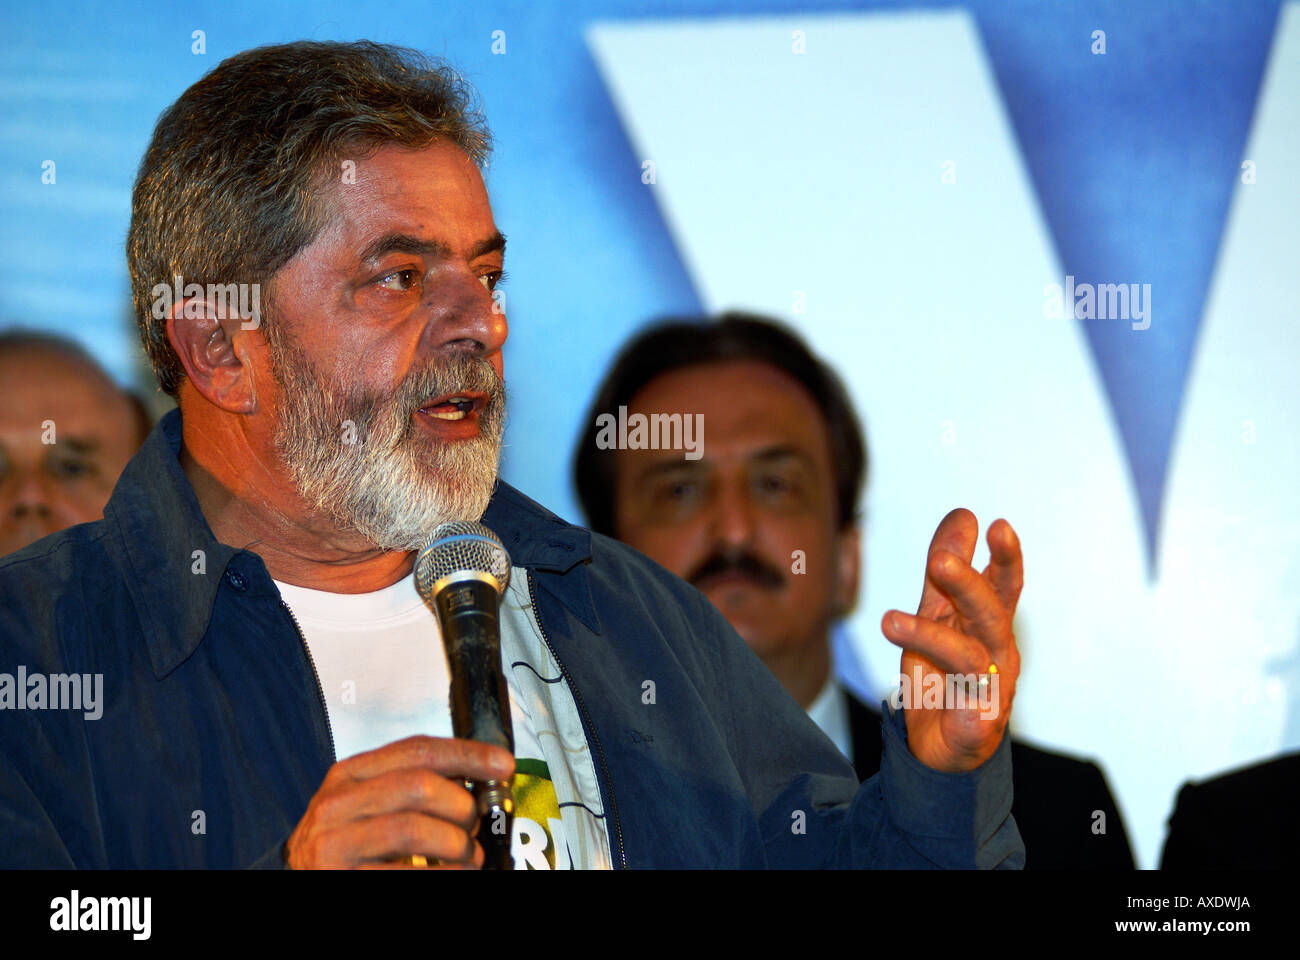 Luiz Inácio Lula da Silva during a press conference on the election day, Hotel Intercontinental, São Paulo, Brazil. Lula was - Stock Image